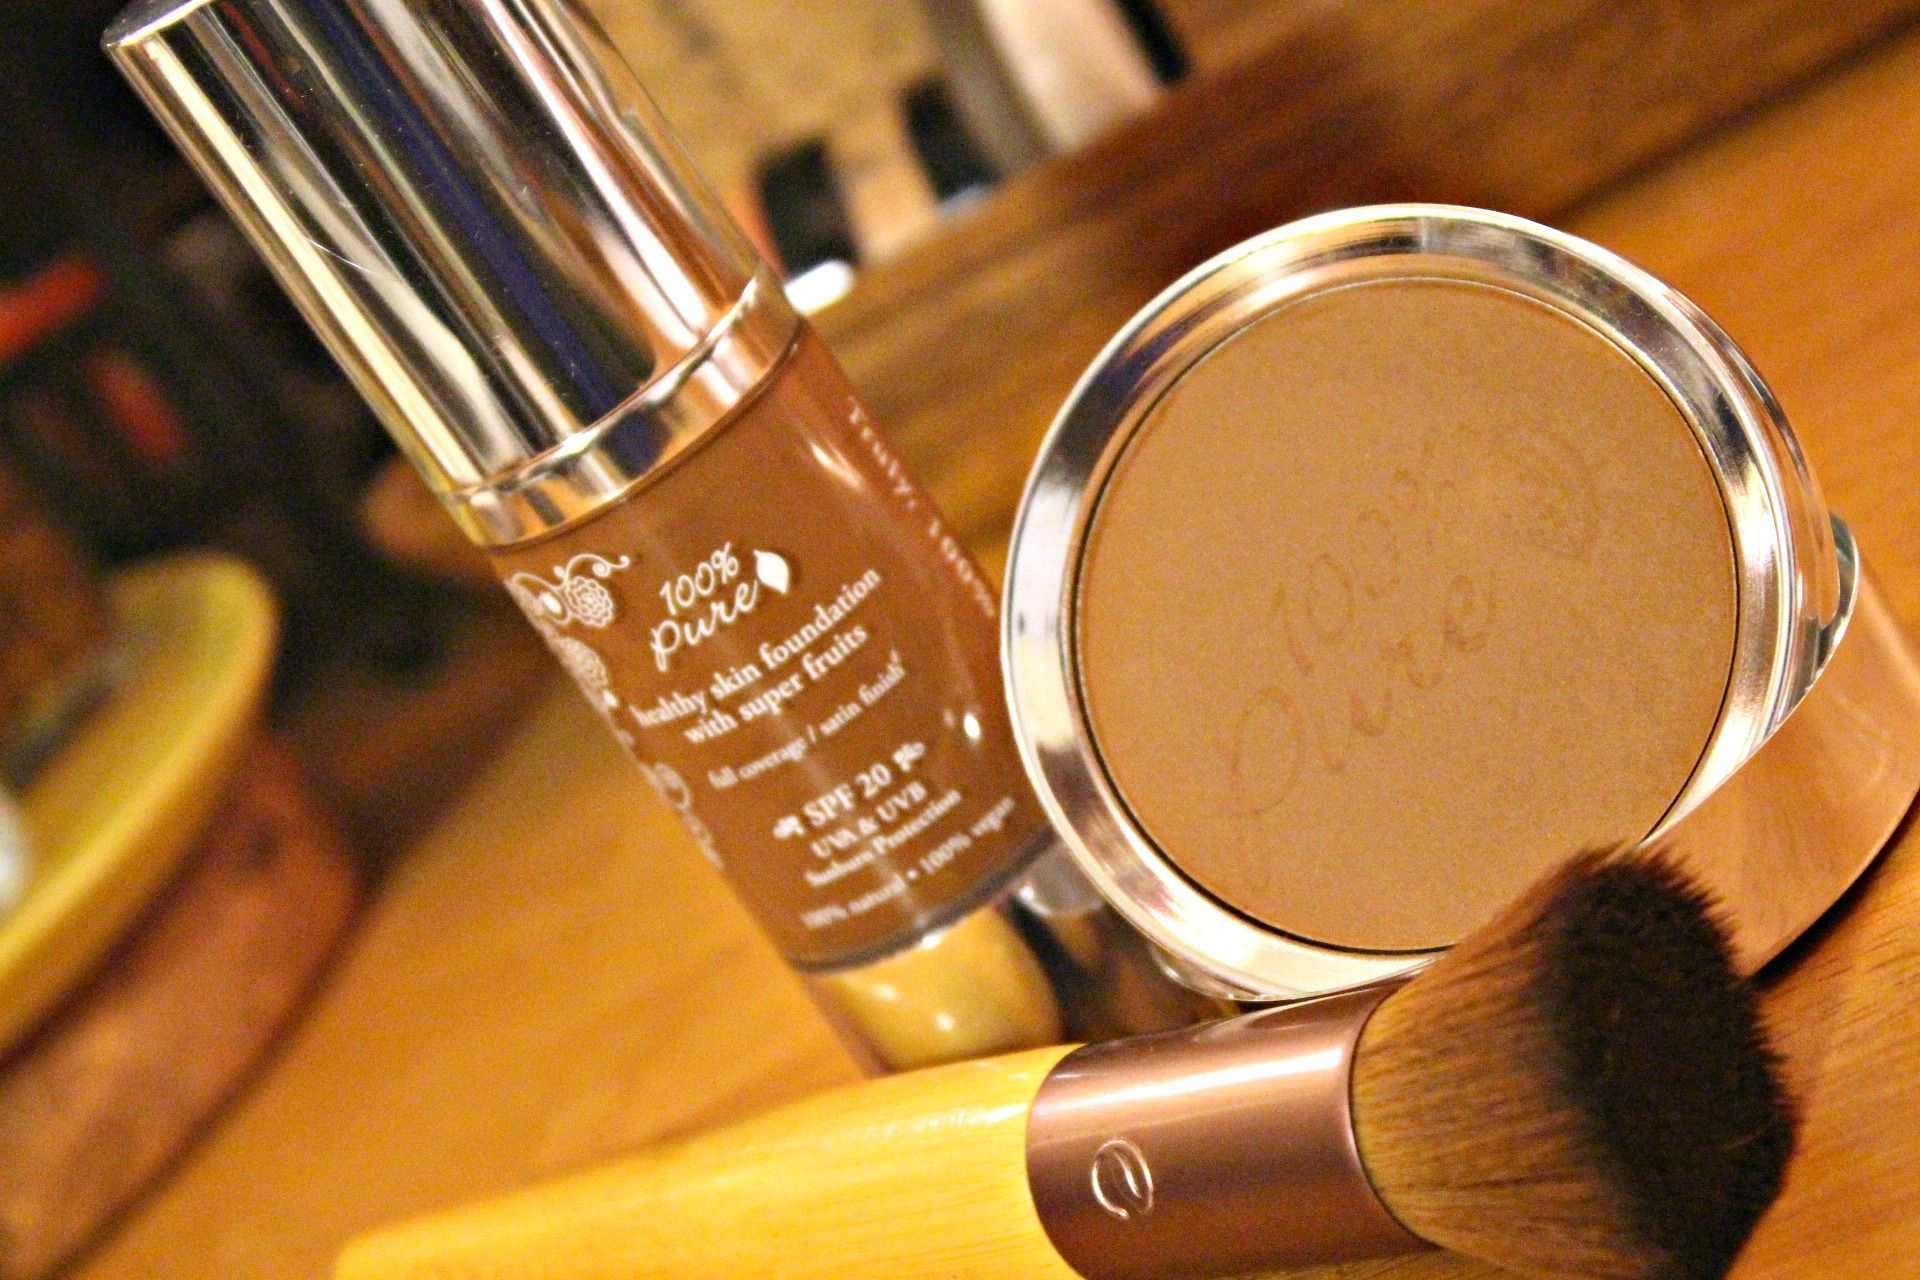 100 Percent Pure Healthy Skin Foundation and Powder in